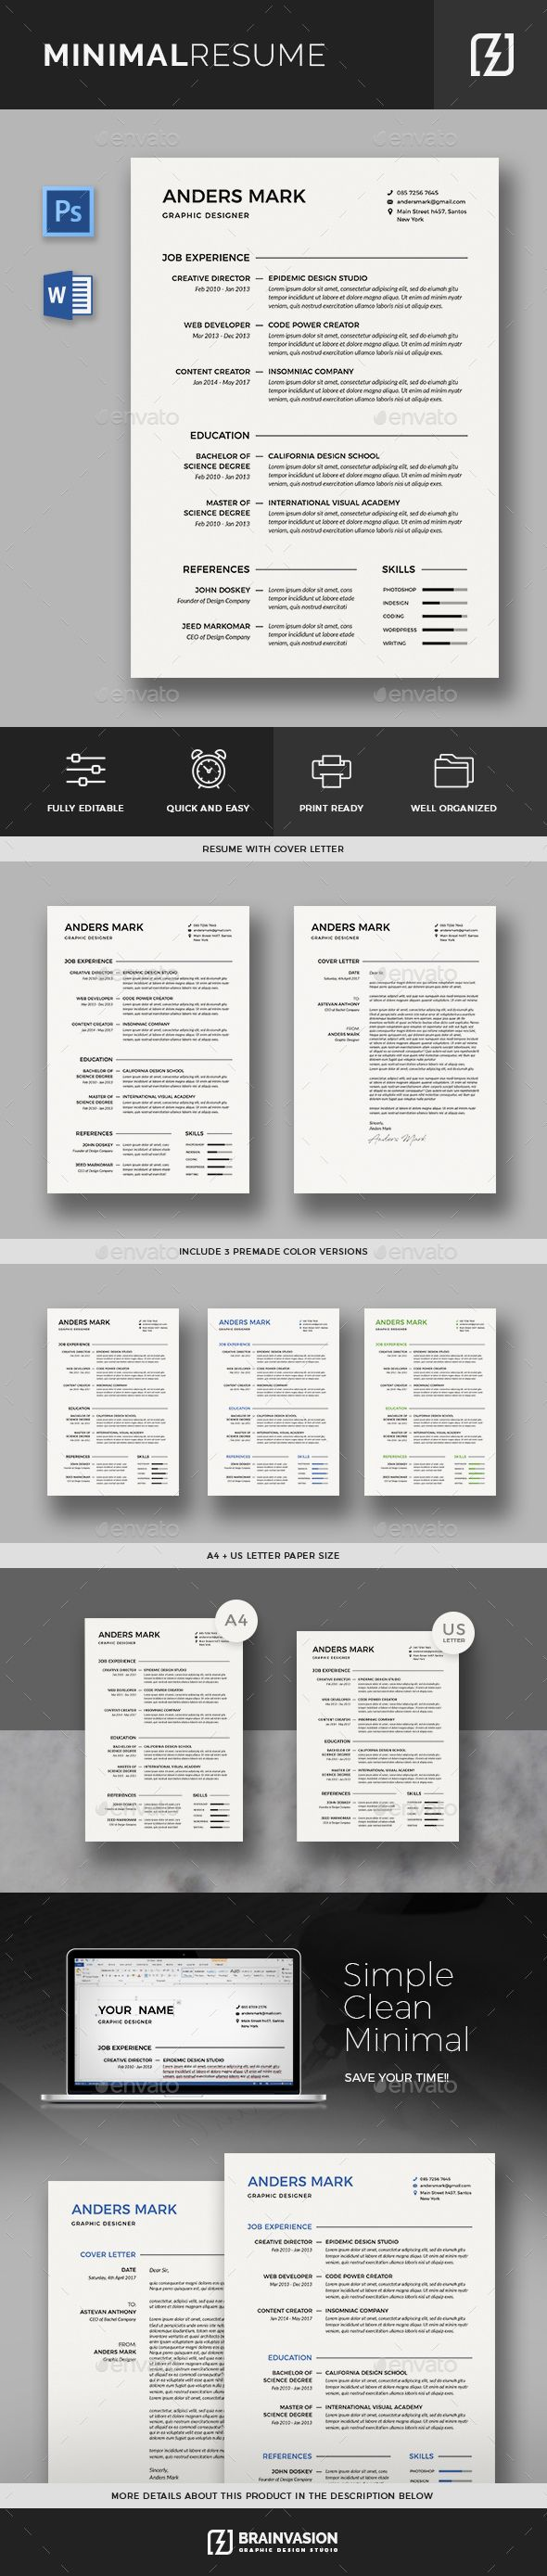 10 best Best Banking Resume Templates & Samples images on Pinterest ...